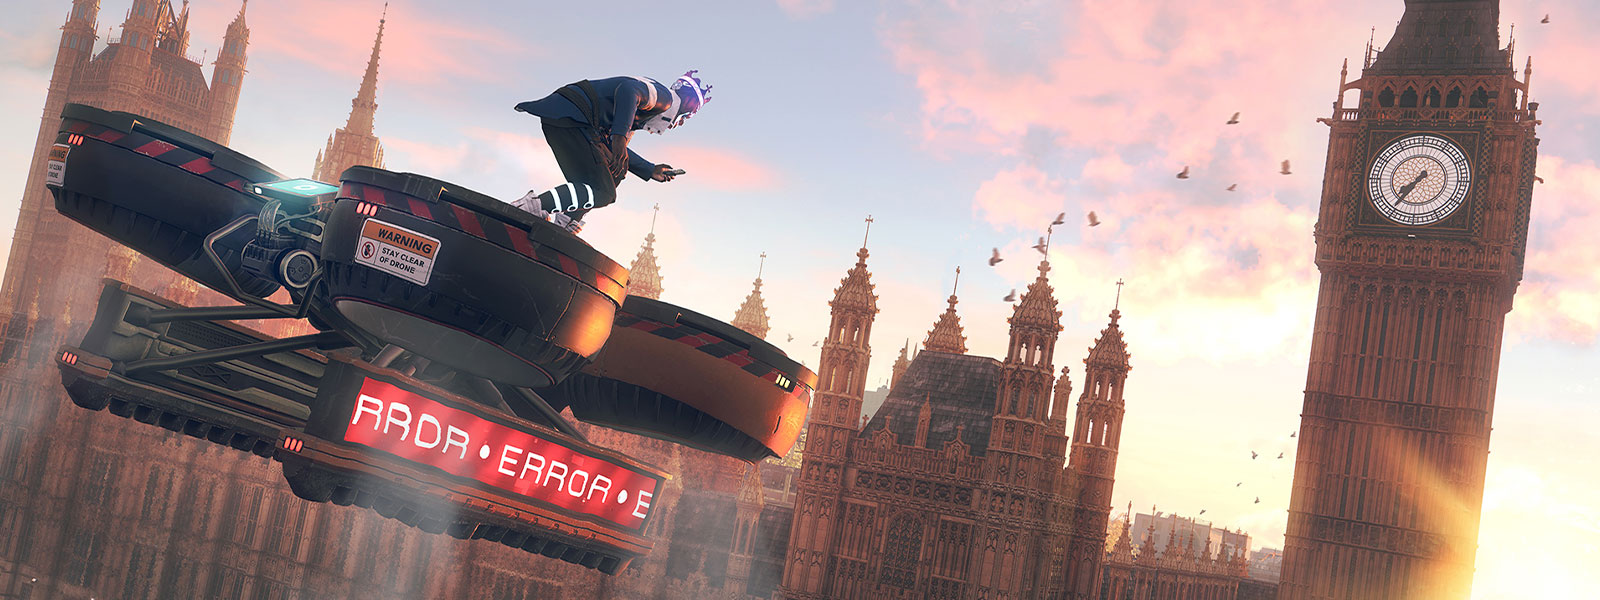 Character on a large drone flying towards Big Ben